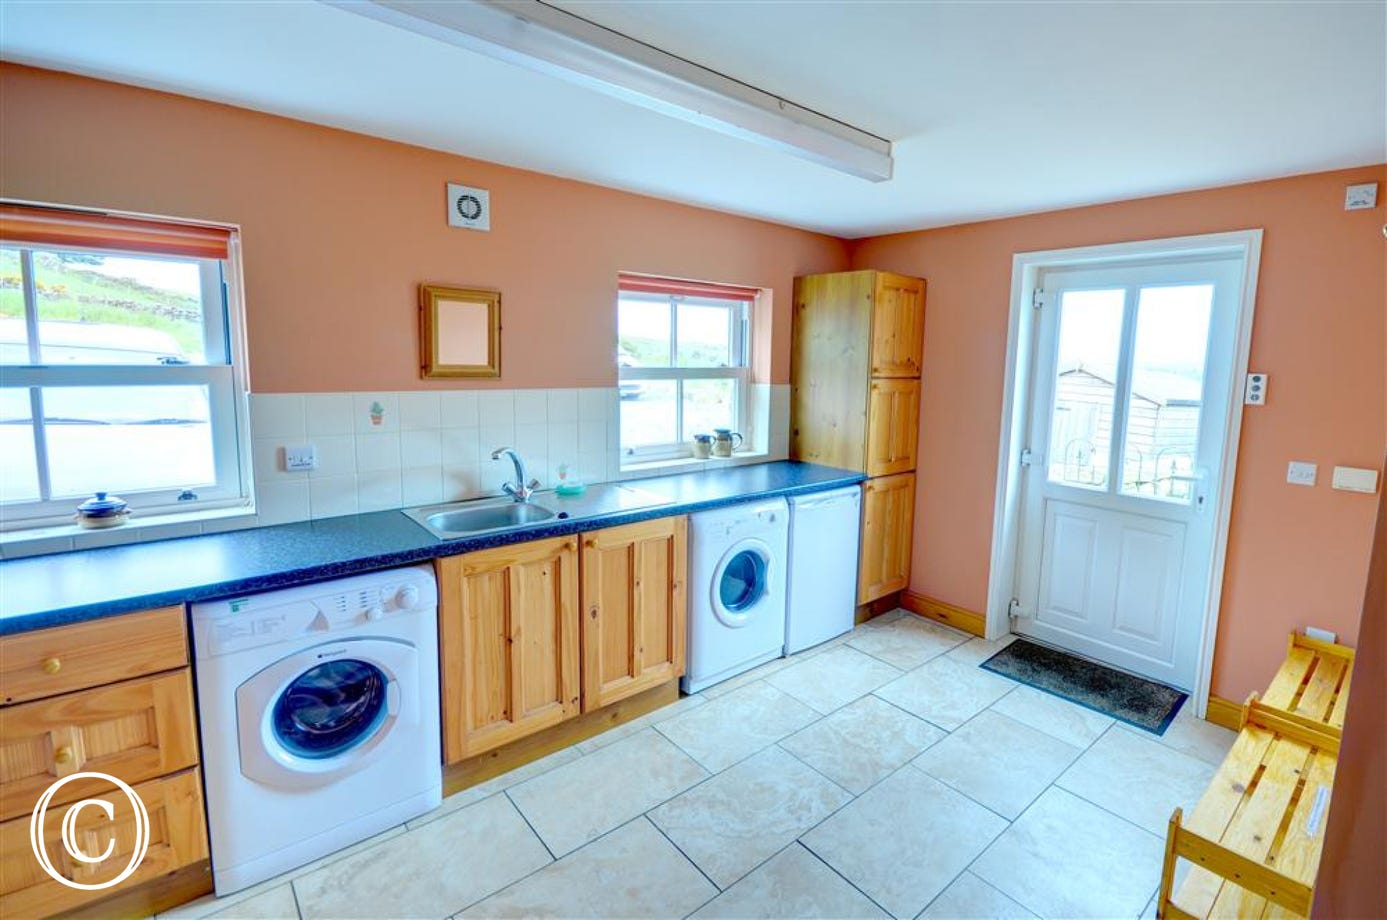 Large utility room offers some extra storage. Also there is a freezer, a washing machine and tumble dryer.